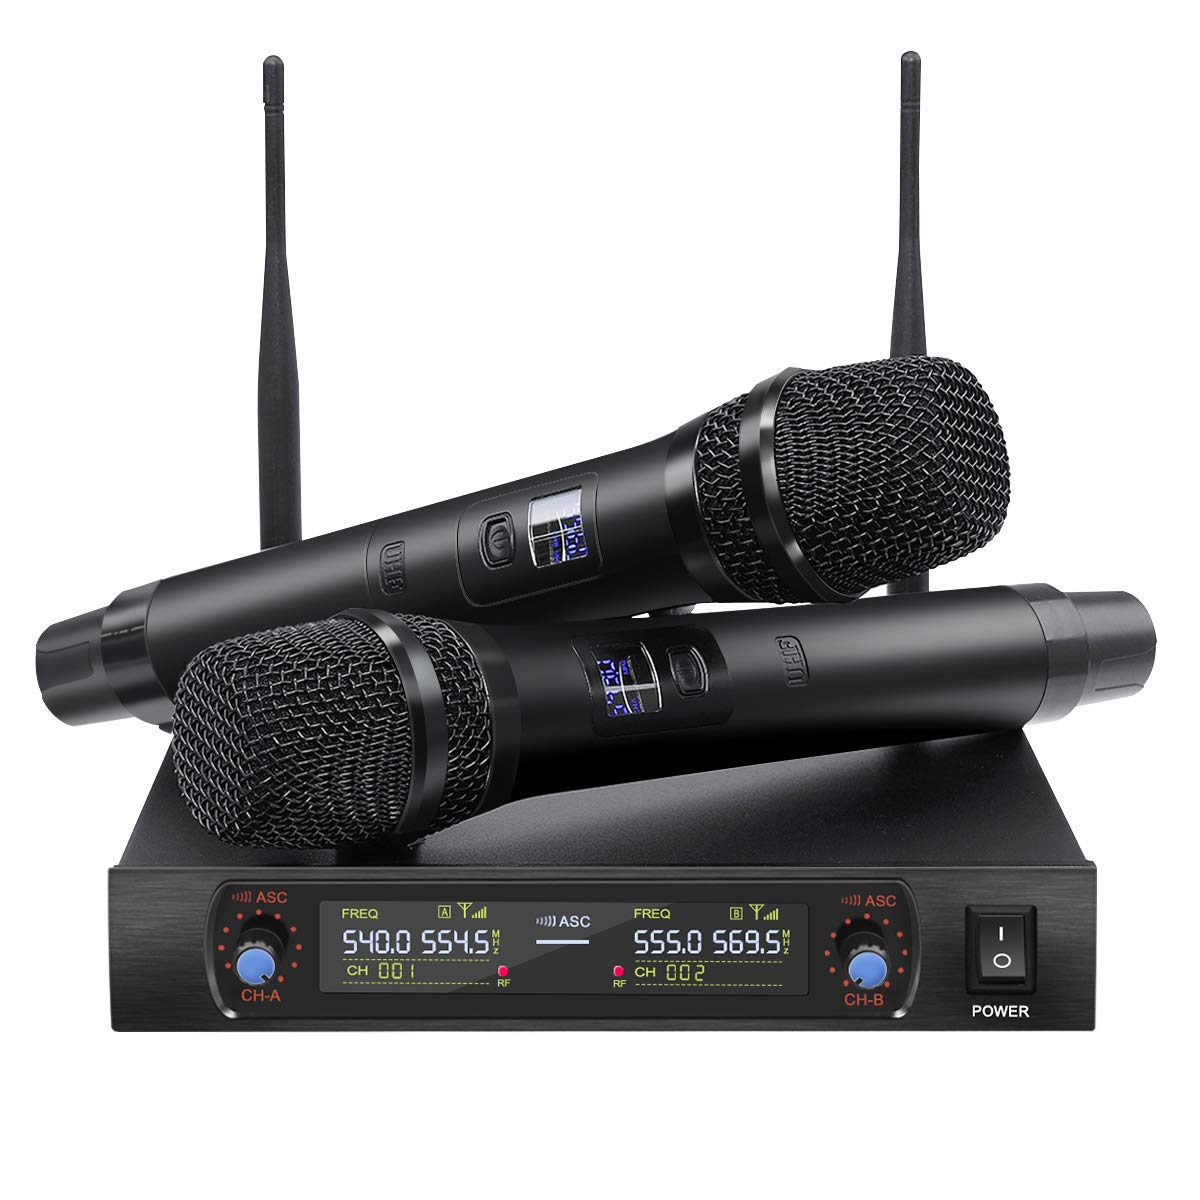 NASUM Handheld Wireless Microphone System with UHF Dual Channel Dual Karaoke Wireless Microphone LCD Display Professional KTV Set for Party,Meeting,Karaoke,Classroom by NASUM